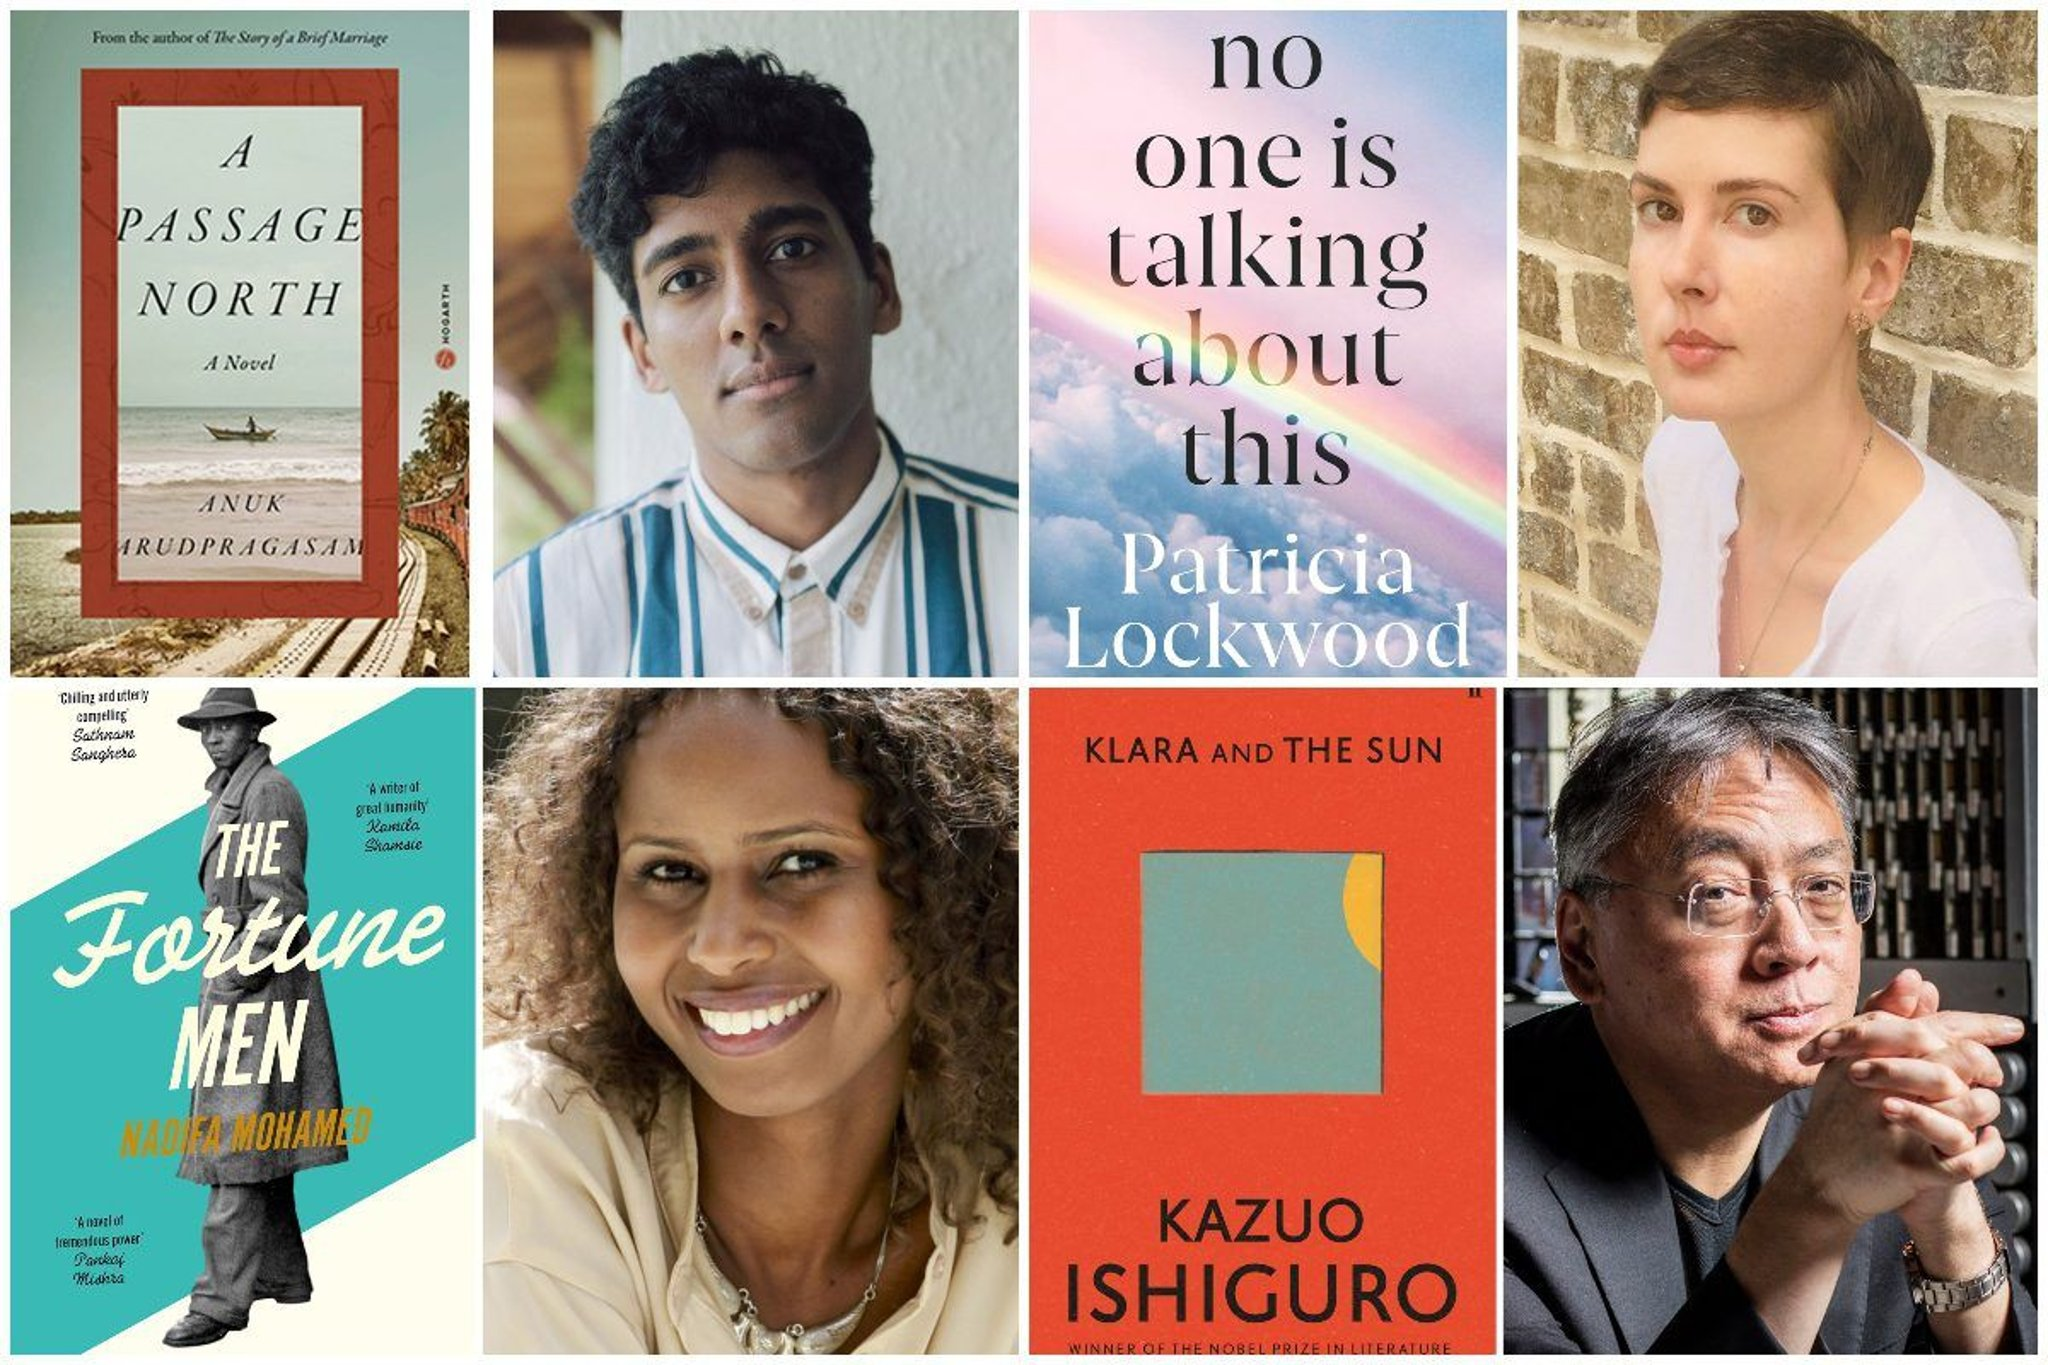 The full list of all 13 books in contention for the Booker Prize 2021 - including Klara and the Sun